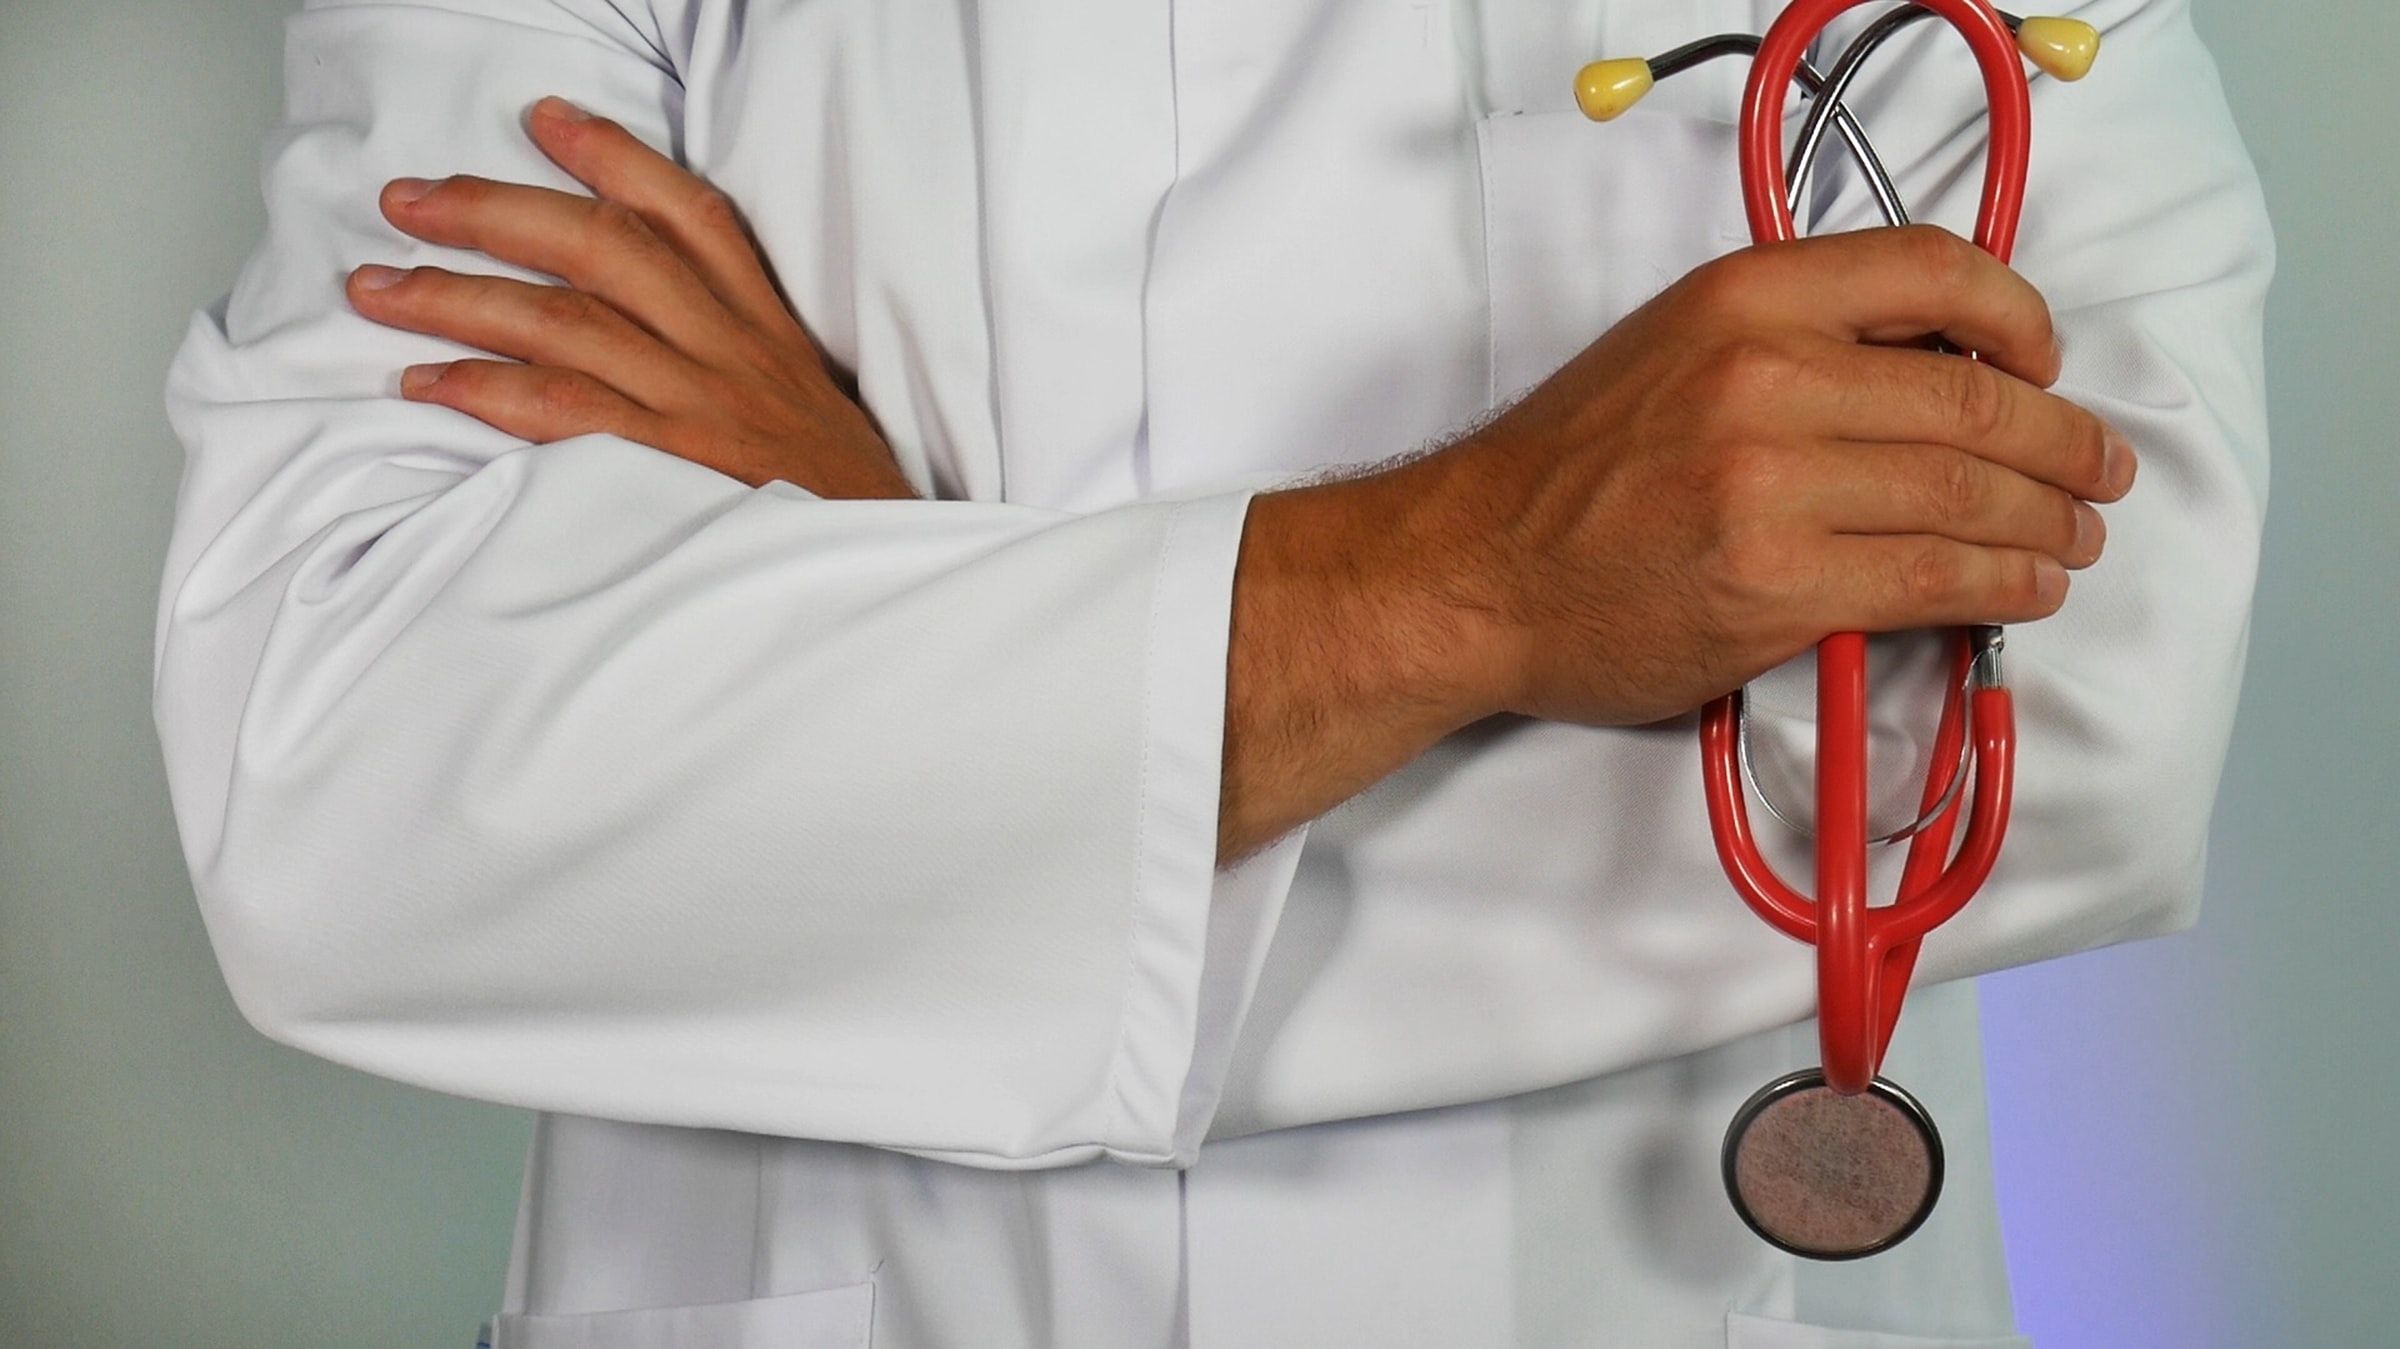 Why Do Hospital Doctors Wear White Coats?